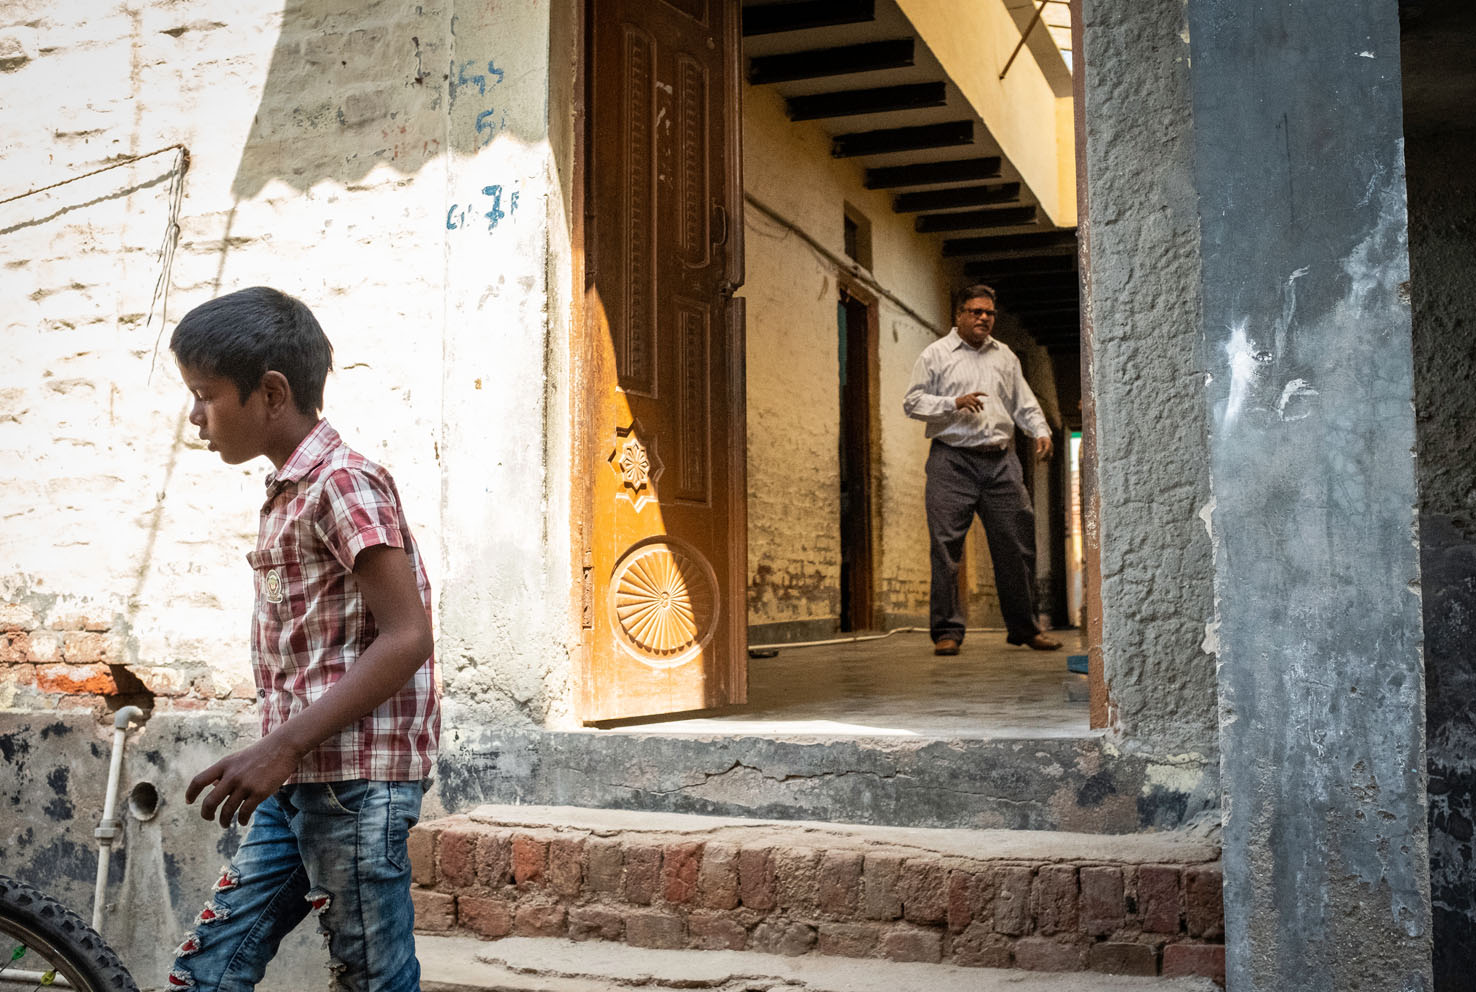 A child exits a former Compassion International school site in New Delhi, India. In 2017, Indian Prime Minister Narendra Modi's Bharatiya Janata Party declared that Christian Non-Governmental Organizations operating within India could no longer receive funding from outside the country. Compassion International, a major provider of education and orphan care, was forced to cease its operations, leaving thousands of children without the provisions the needed to survive. Non-Profit organization Genesis of Hope has managed to maintain several former C.I. school sites, but must fight constant heavy financial challenges to move forward for the children. New Delhi, India. 2018. Photo: John Fredricks